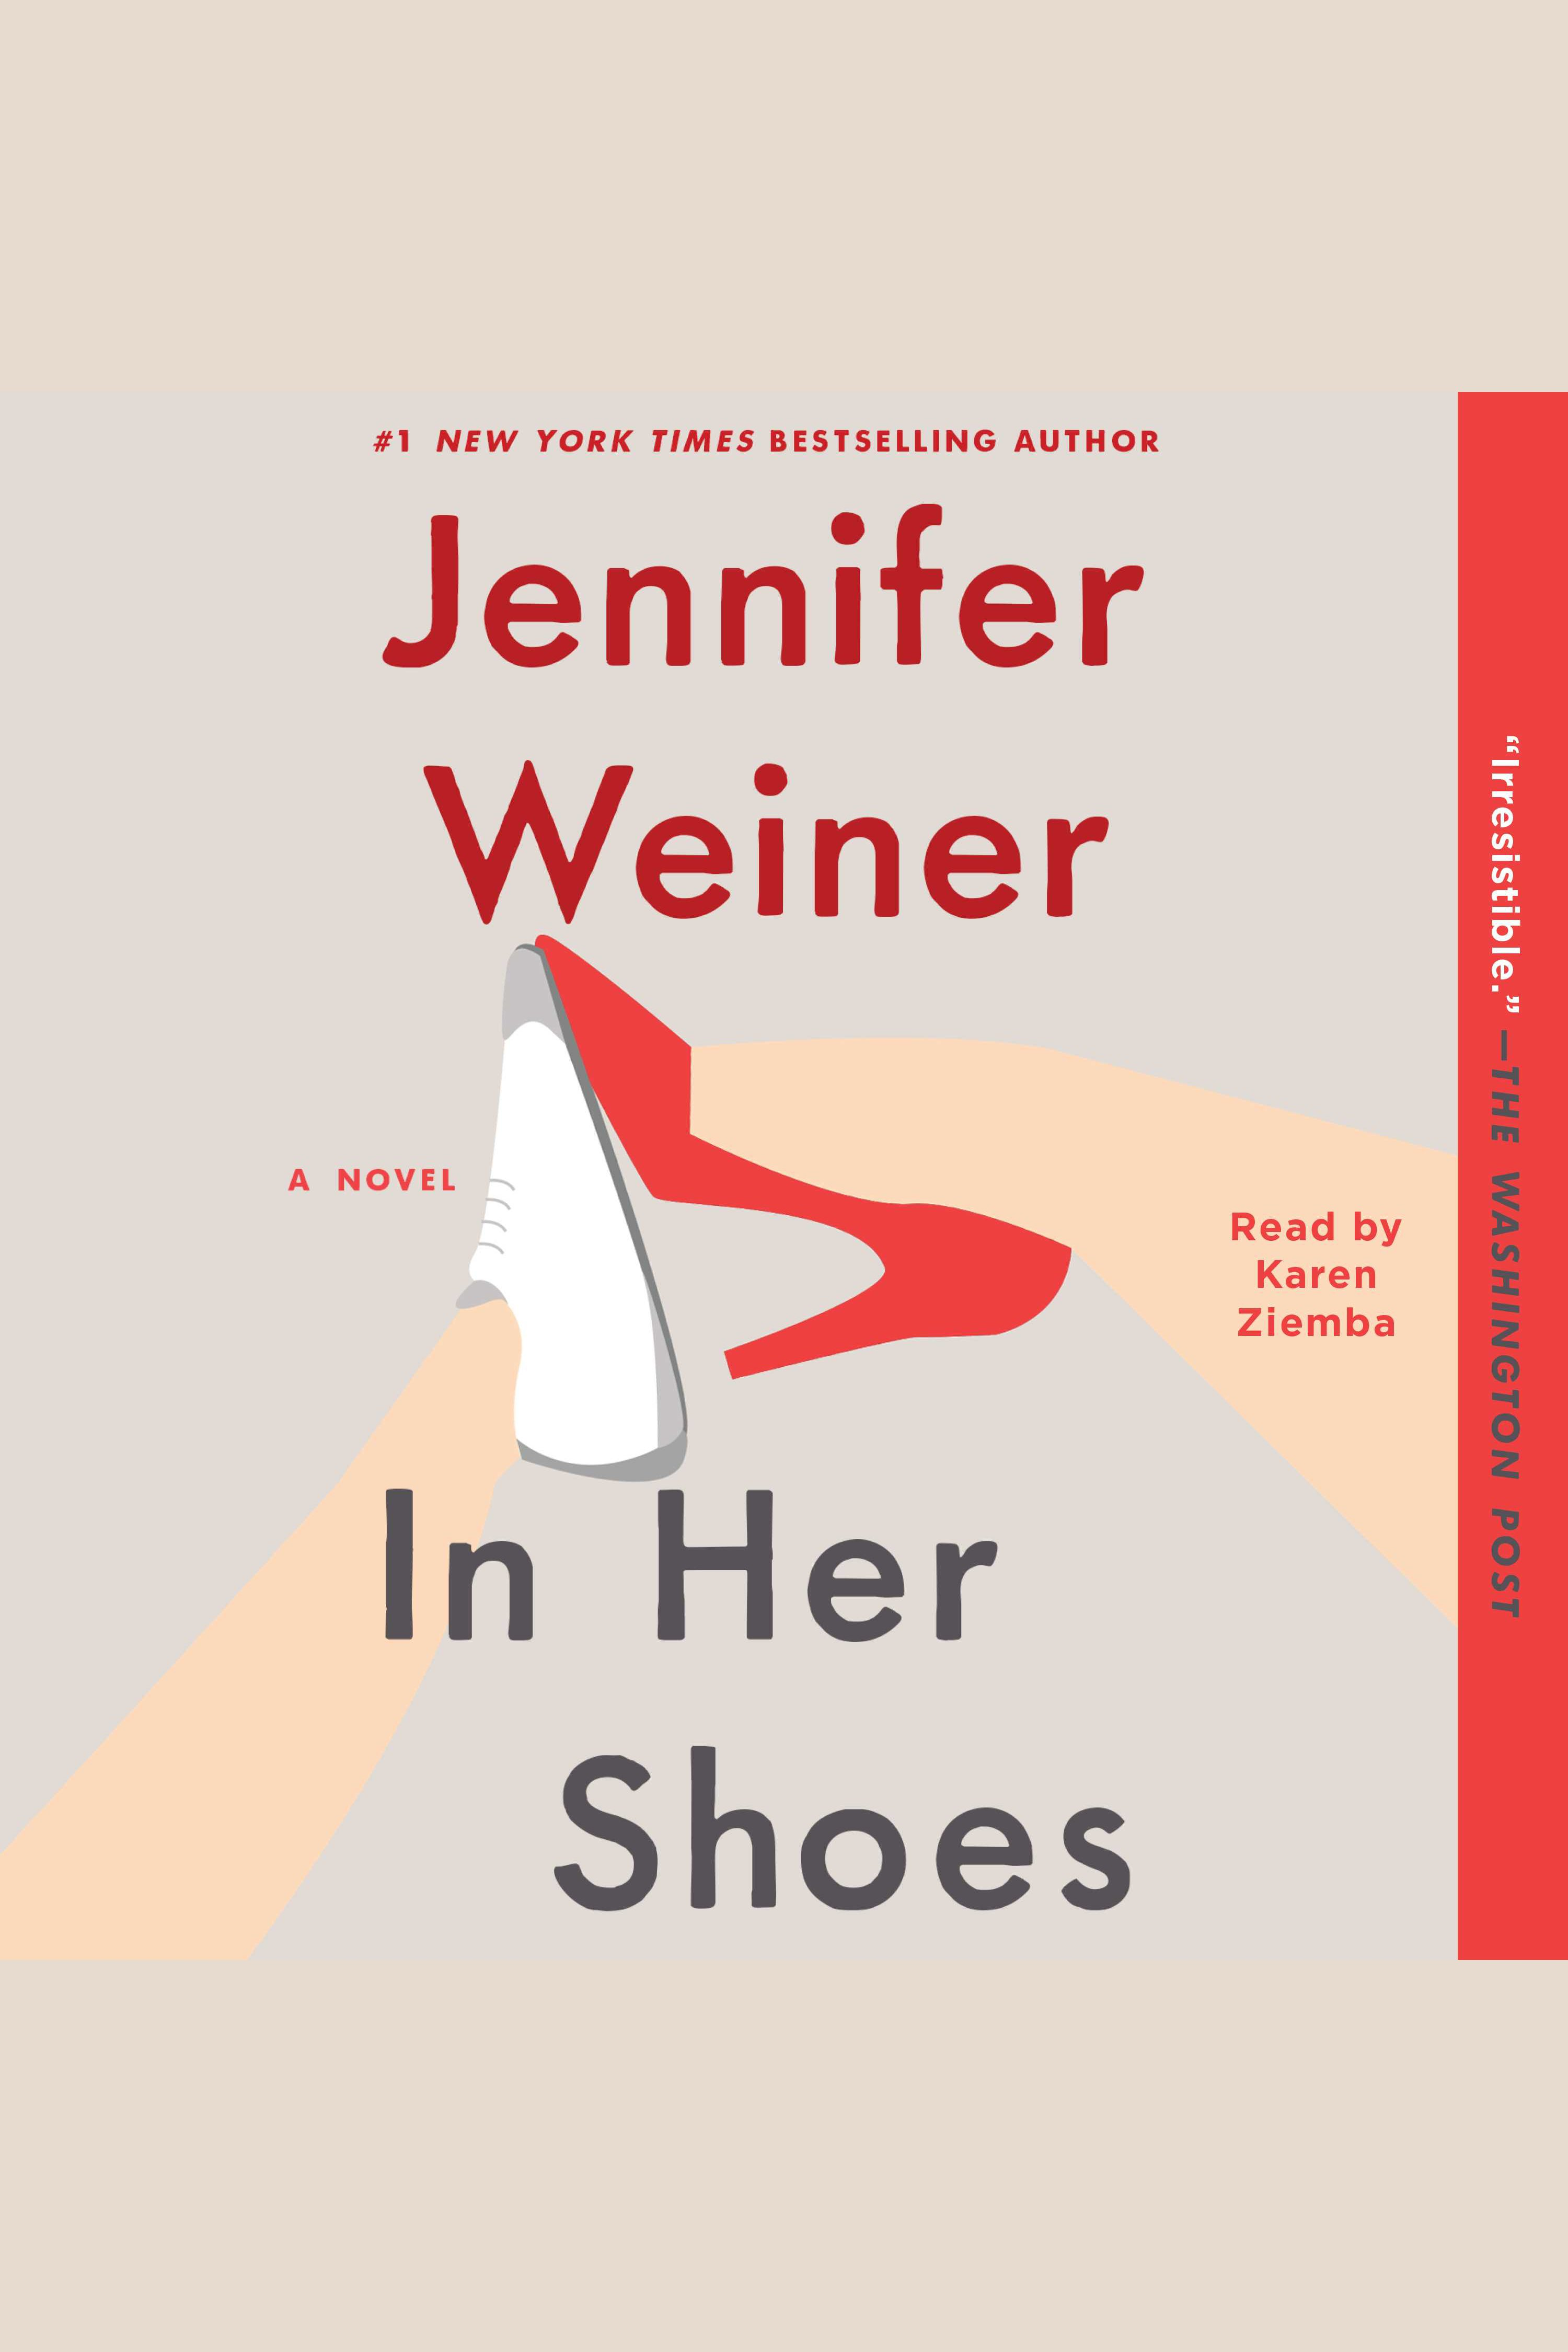 In Her Shoes cover image